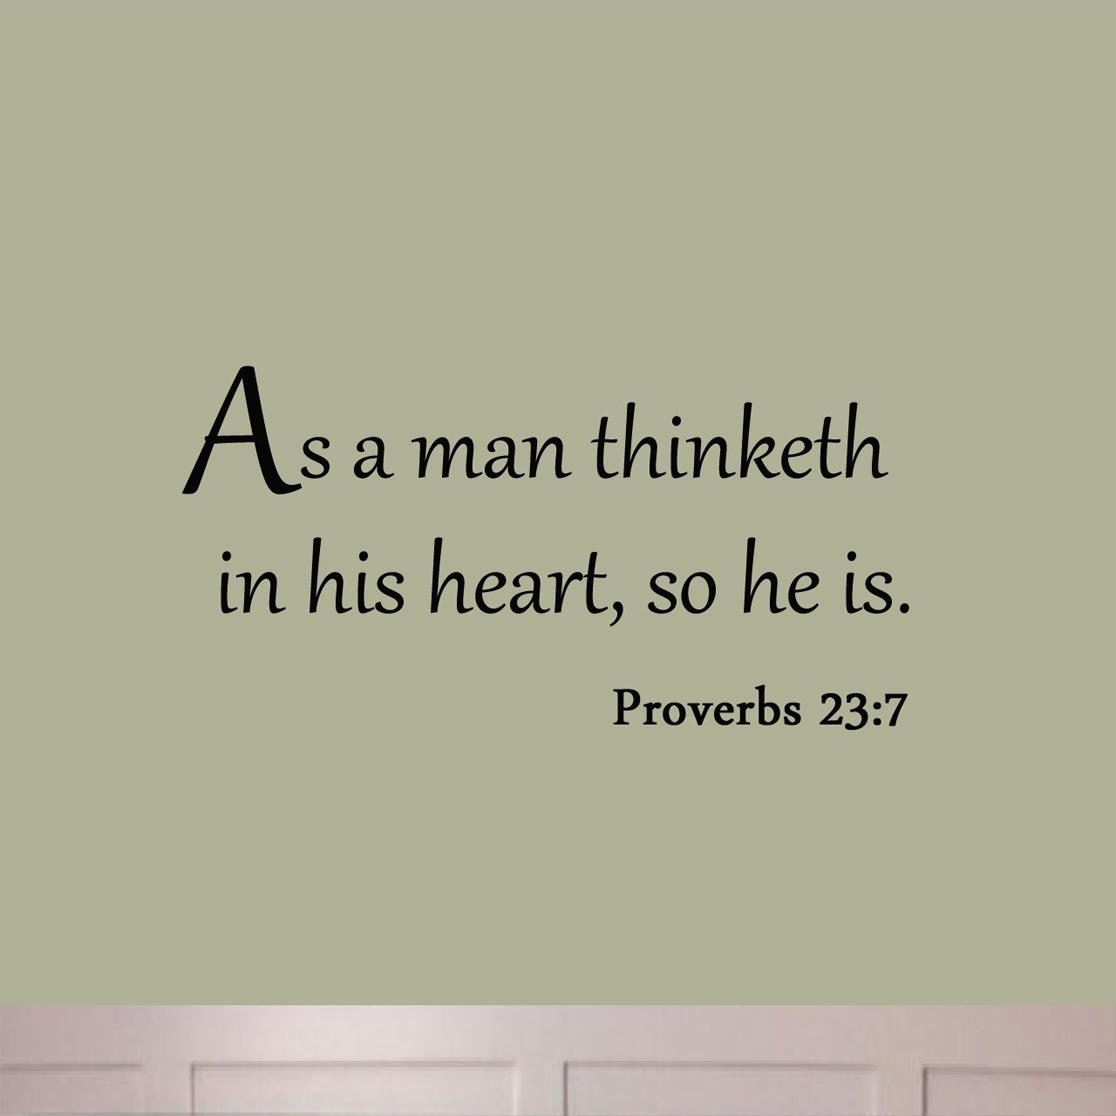 amazon com as a man thinketh in his heart so he is proverbs 23 7 amazon com as a man thinketh in his heart so he is proverbs 23 7 wall decal quote bible religious scripture christian wall art sticker home kitchen